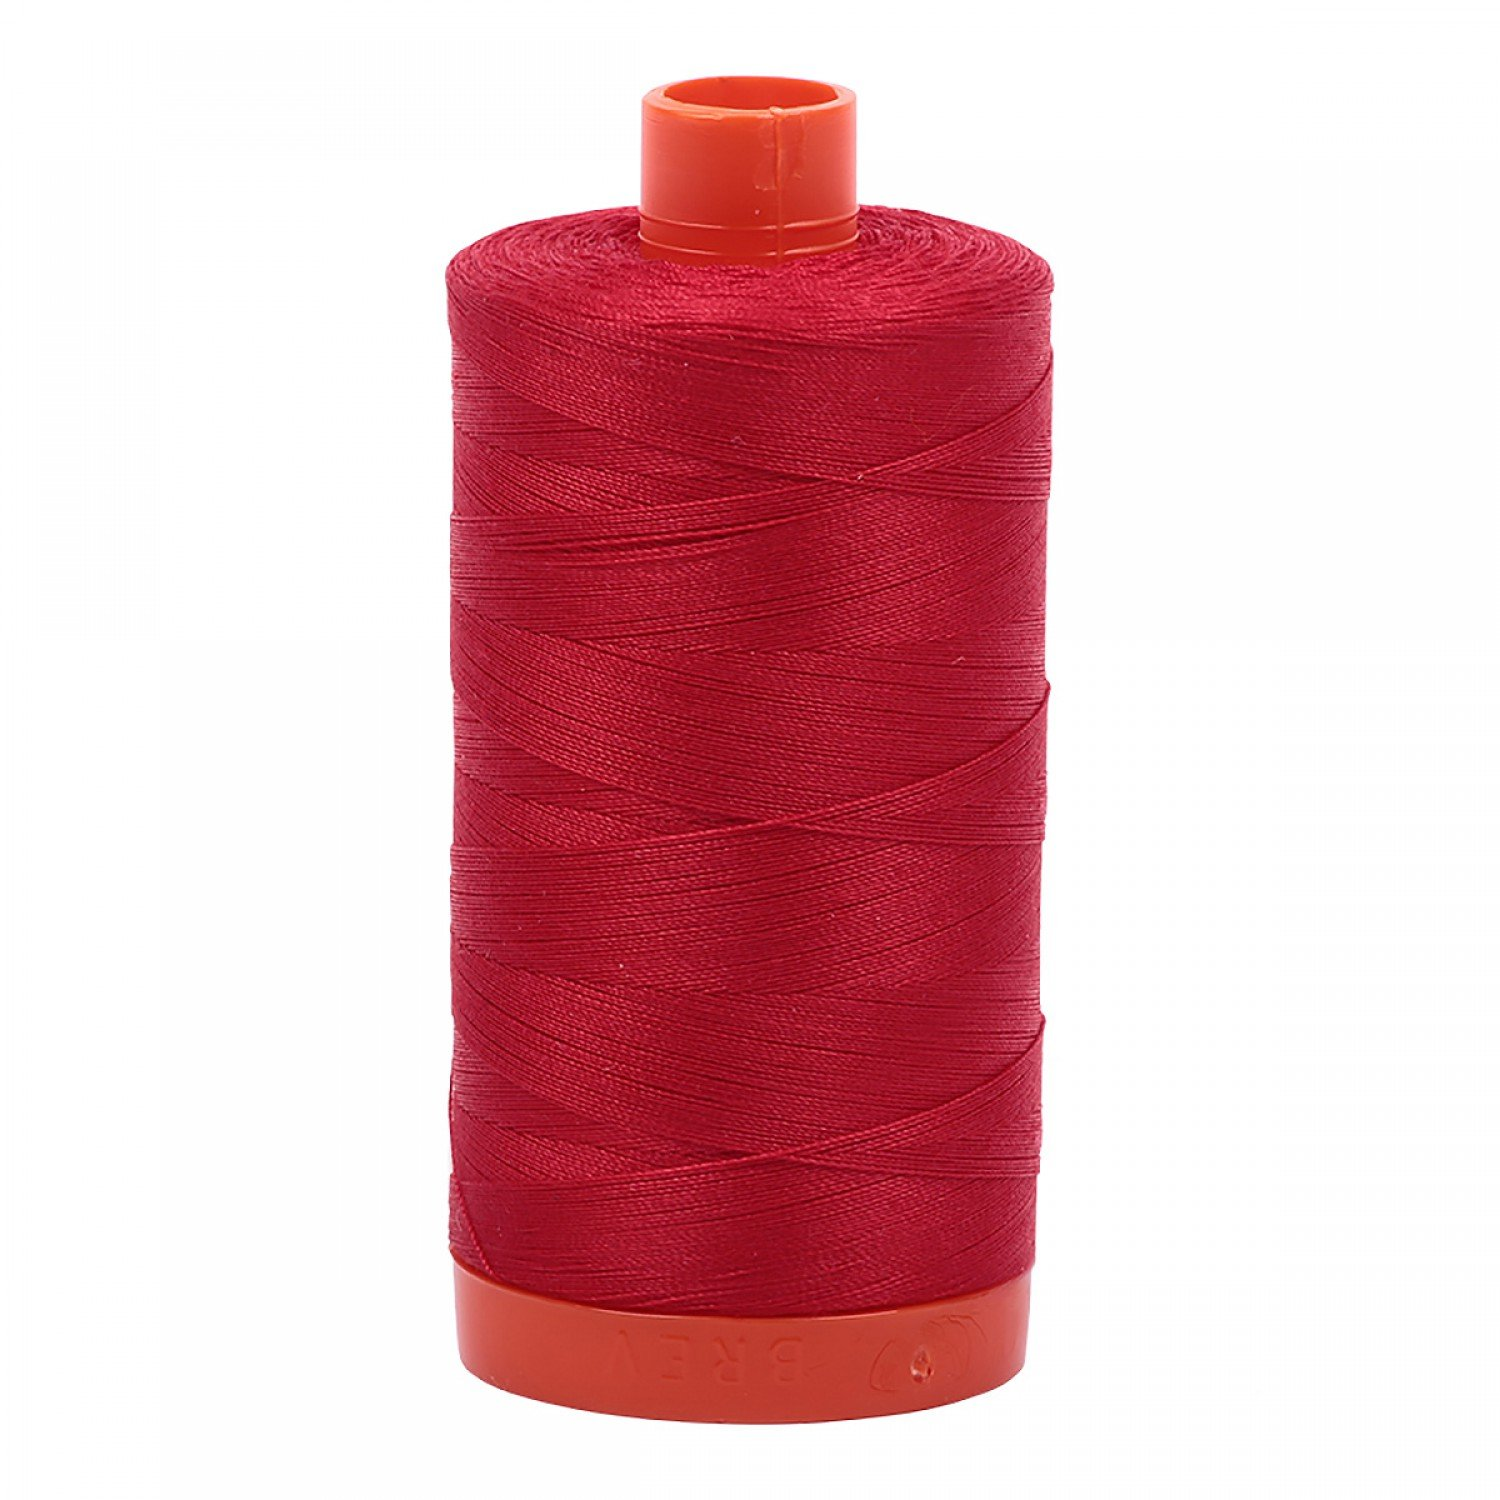 Aurifil Cotton Mako Thread 50wt 1300m 2250 Red